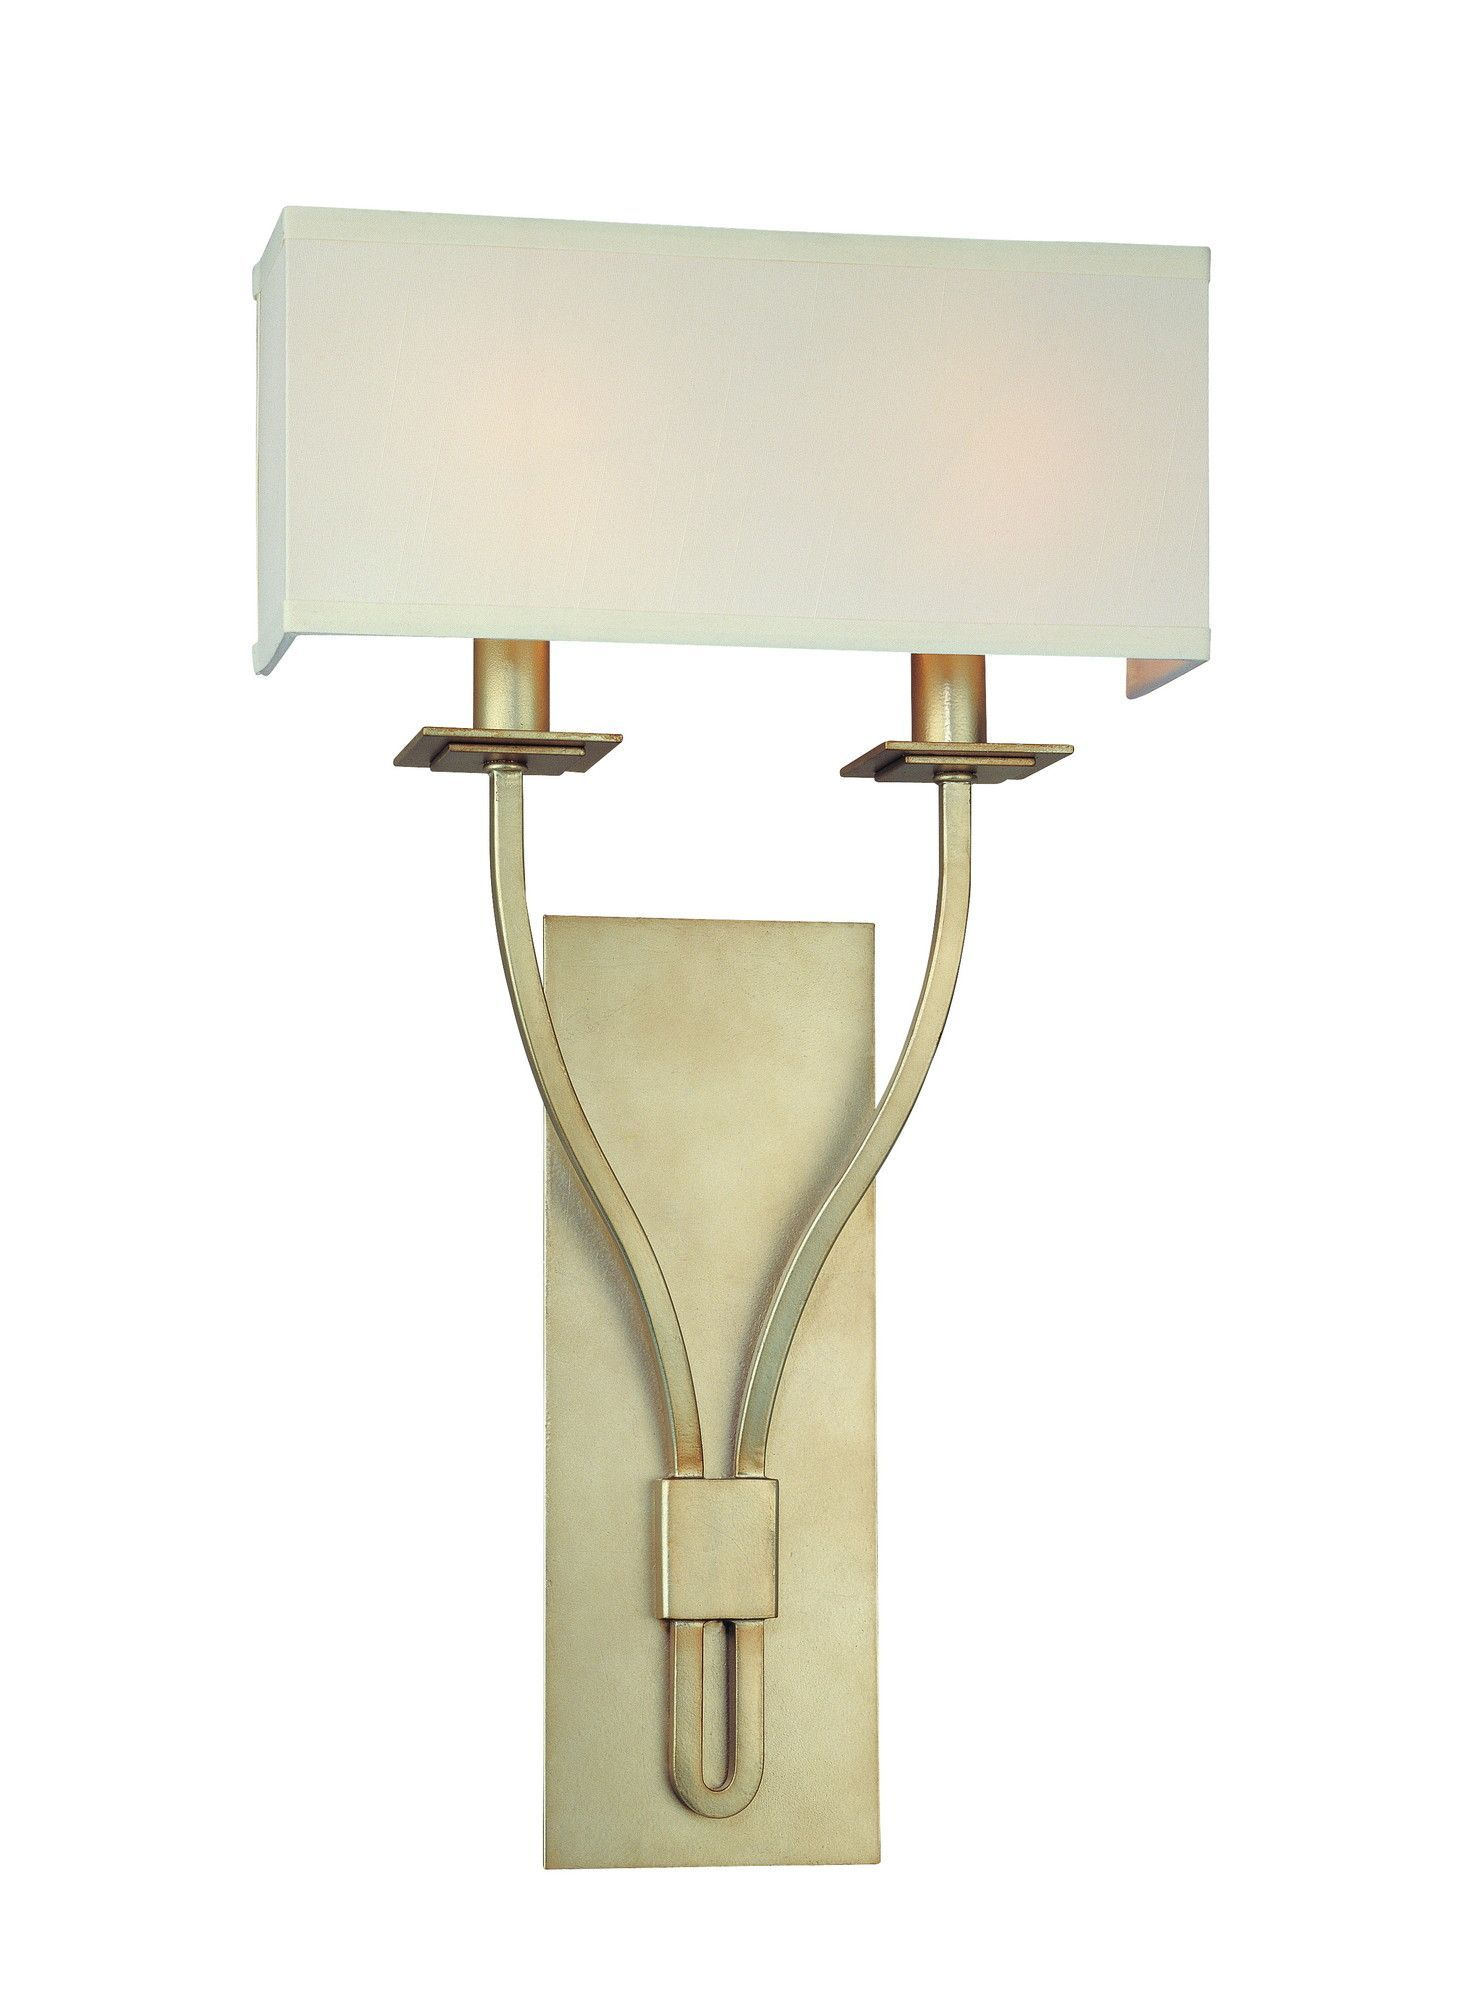 Palladium light wall sconce products pinterest light walls